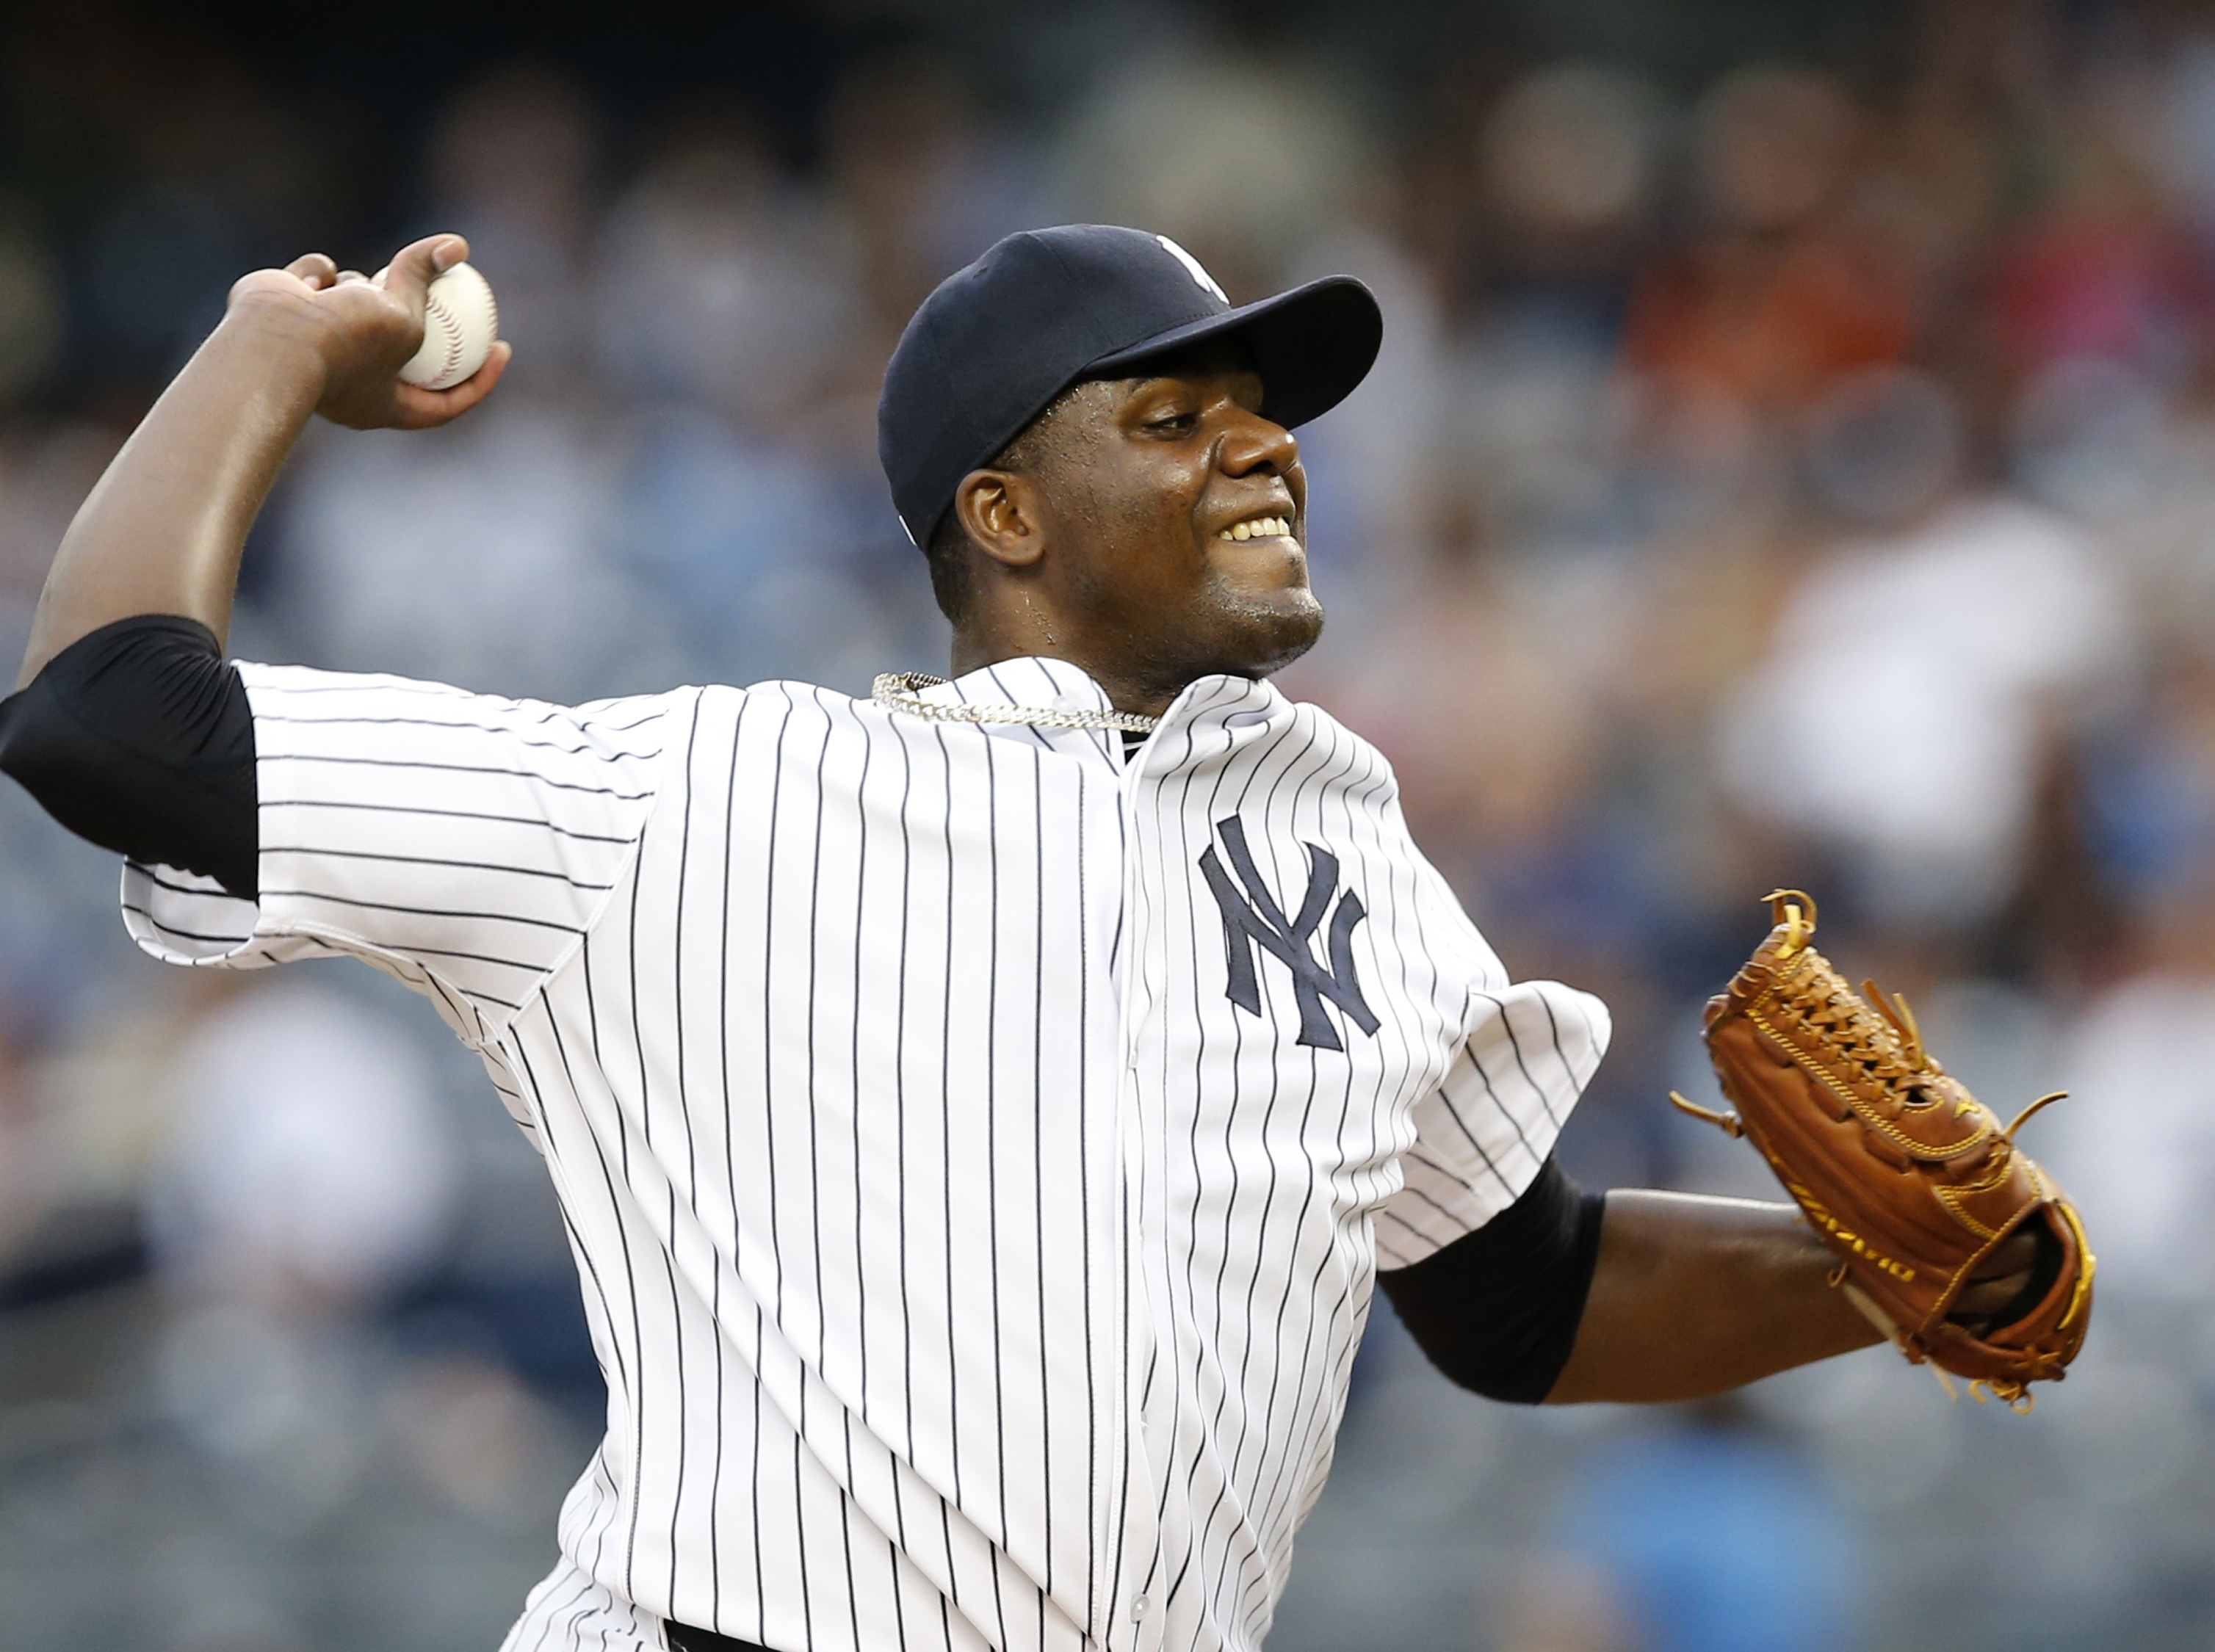 New York Yankees starting pitcher Michael Pineda delivers during the first inning of a baseball game against the Miami Marlins at Yankee Stadium in New York, Wednesday, June 17, 2015.  (AP Photo/Kathy Willens)